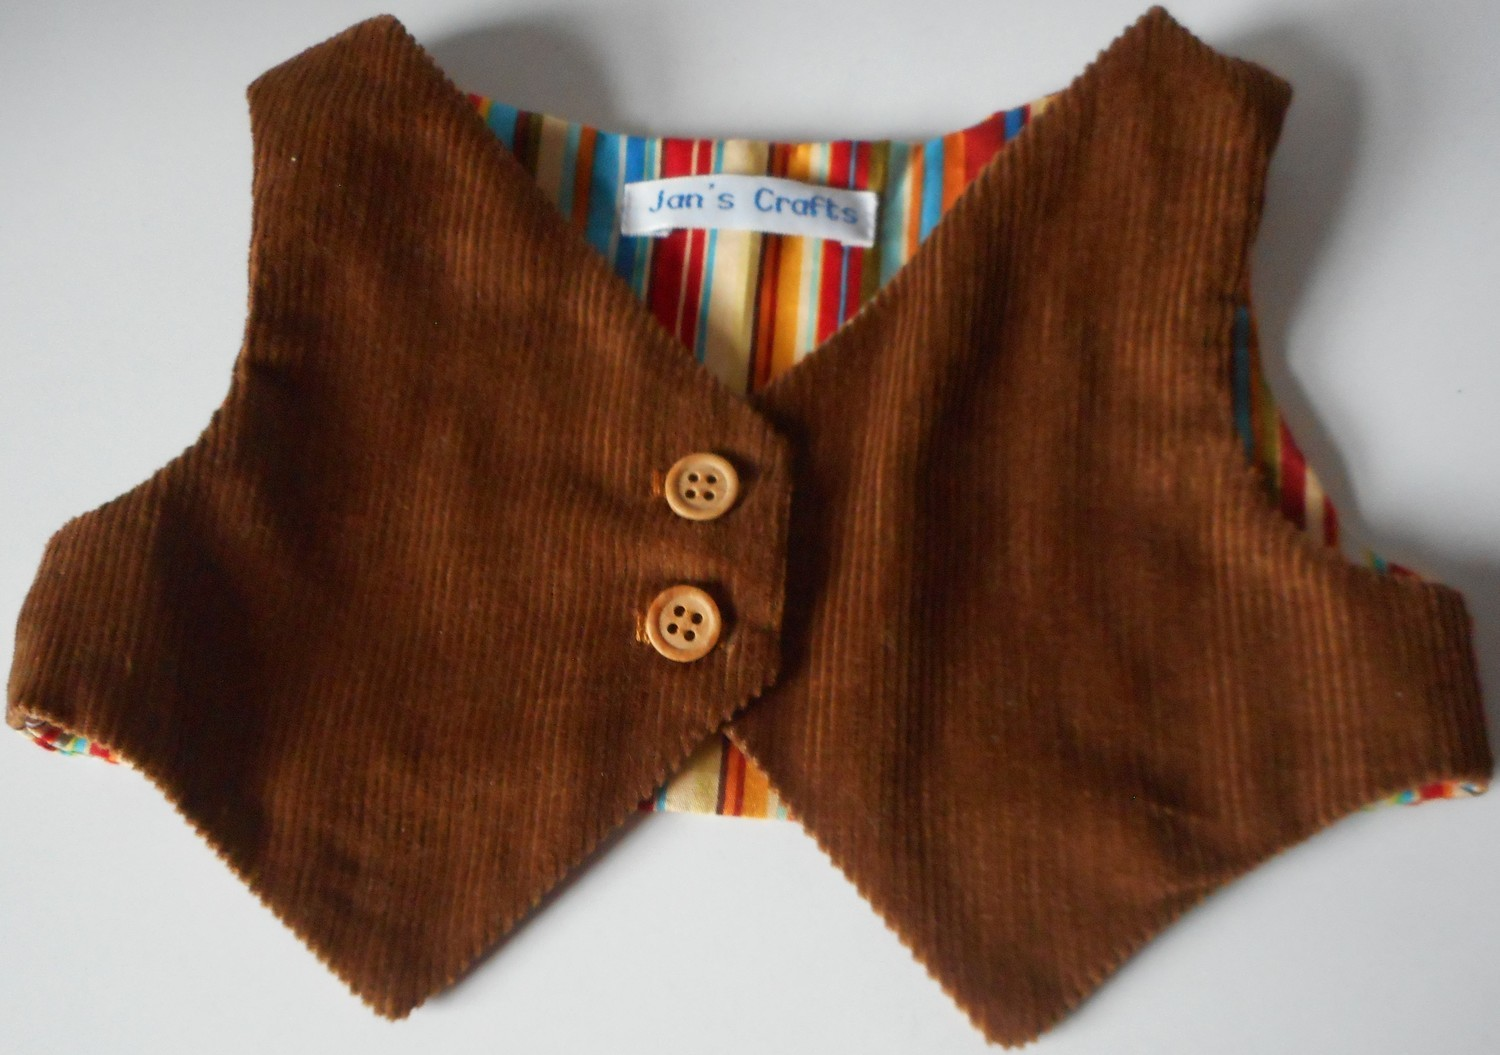 Waistcoat - Tan corduroy with striped lining